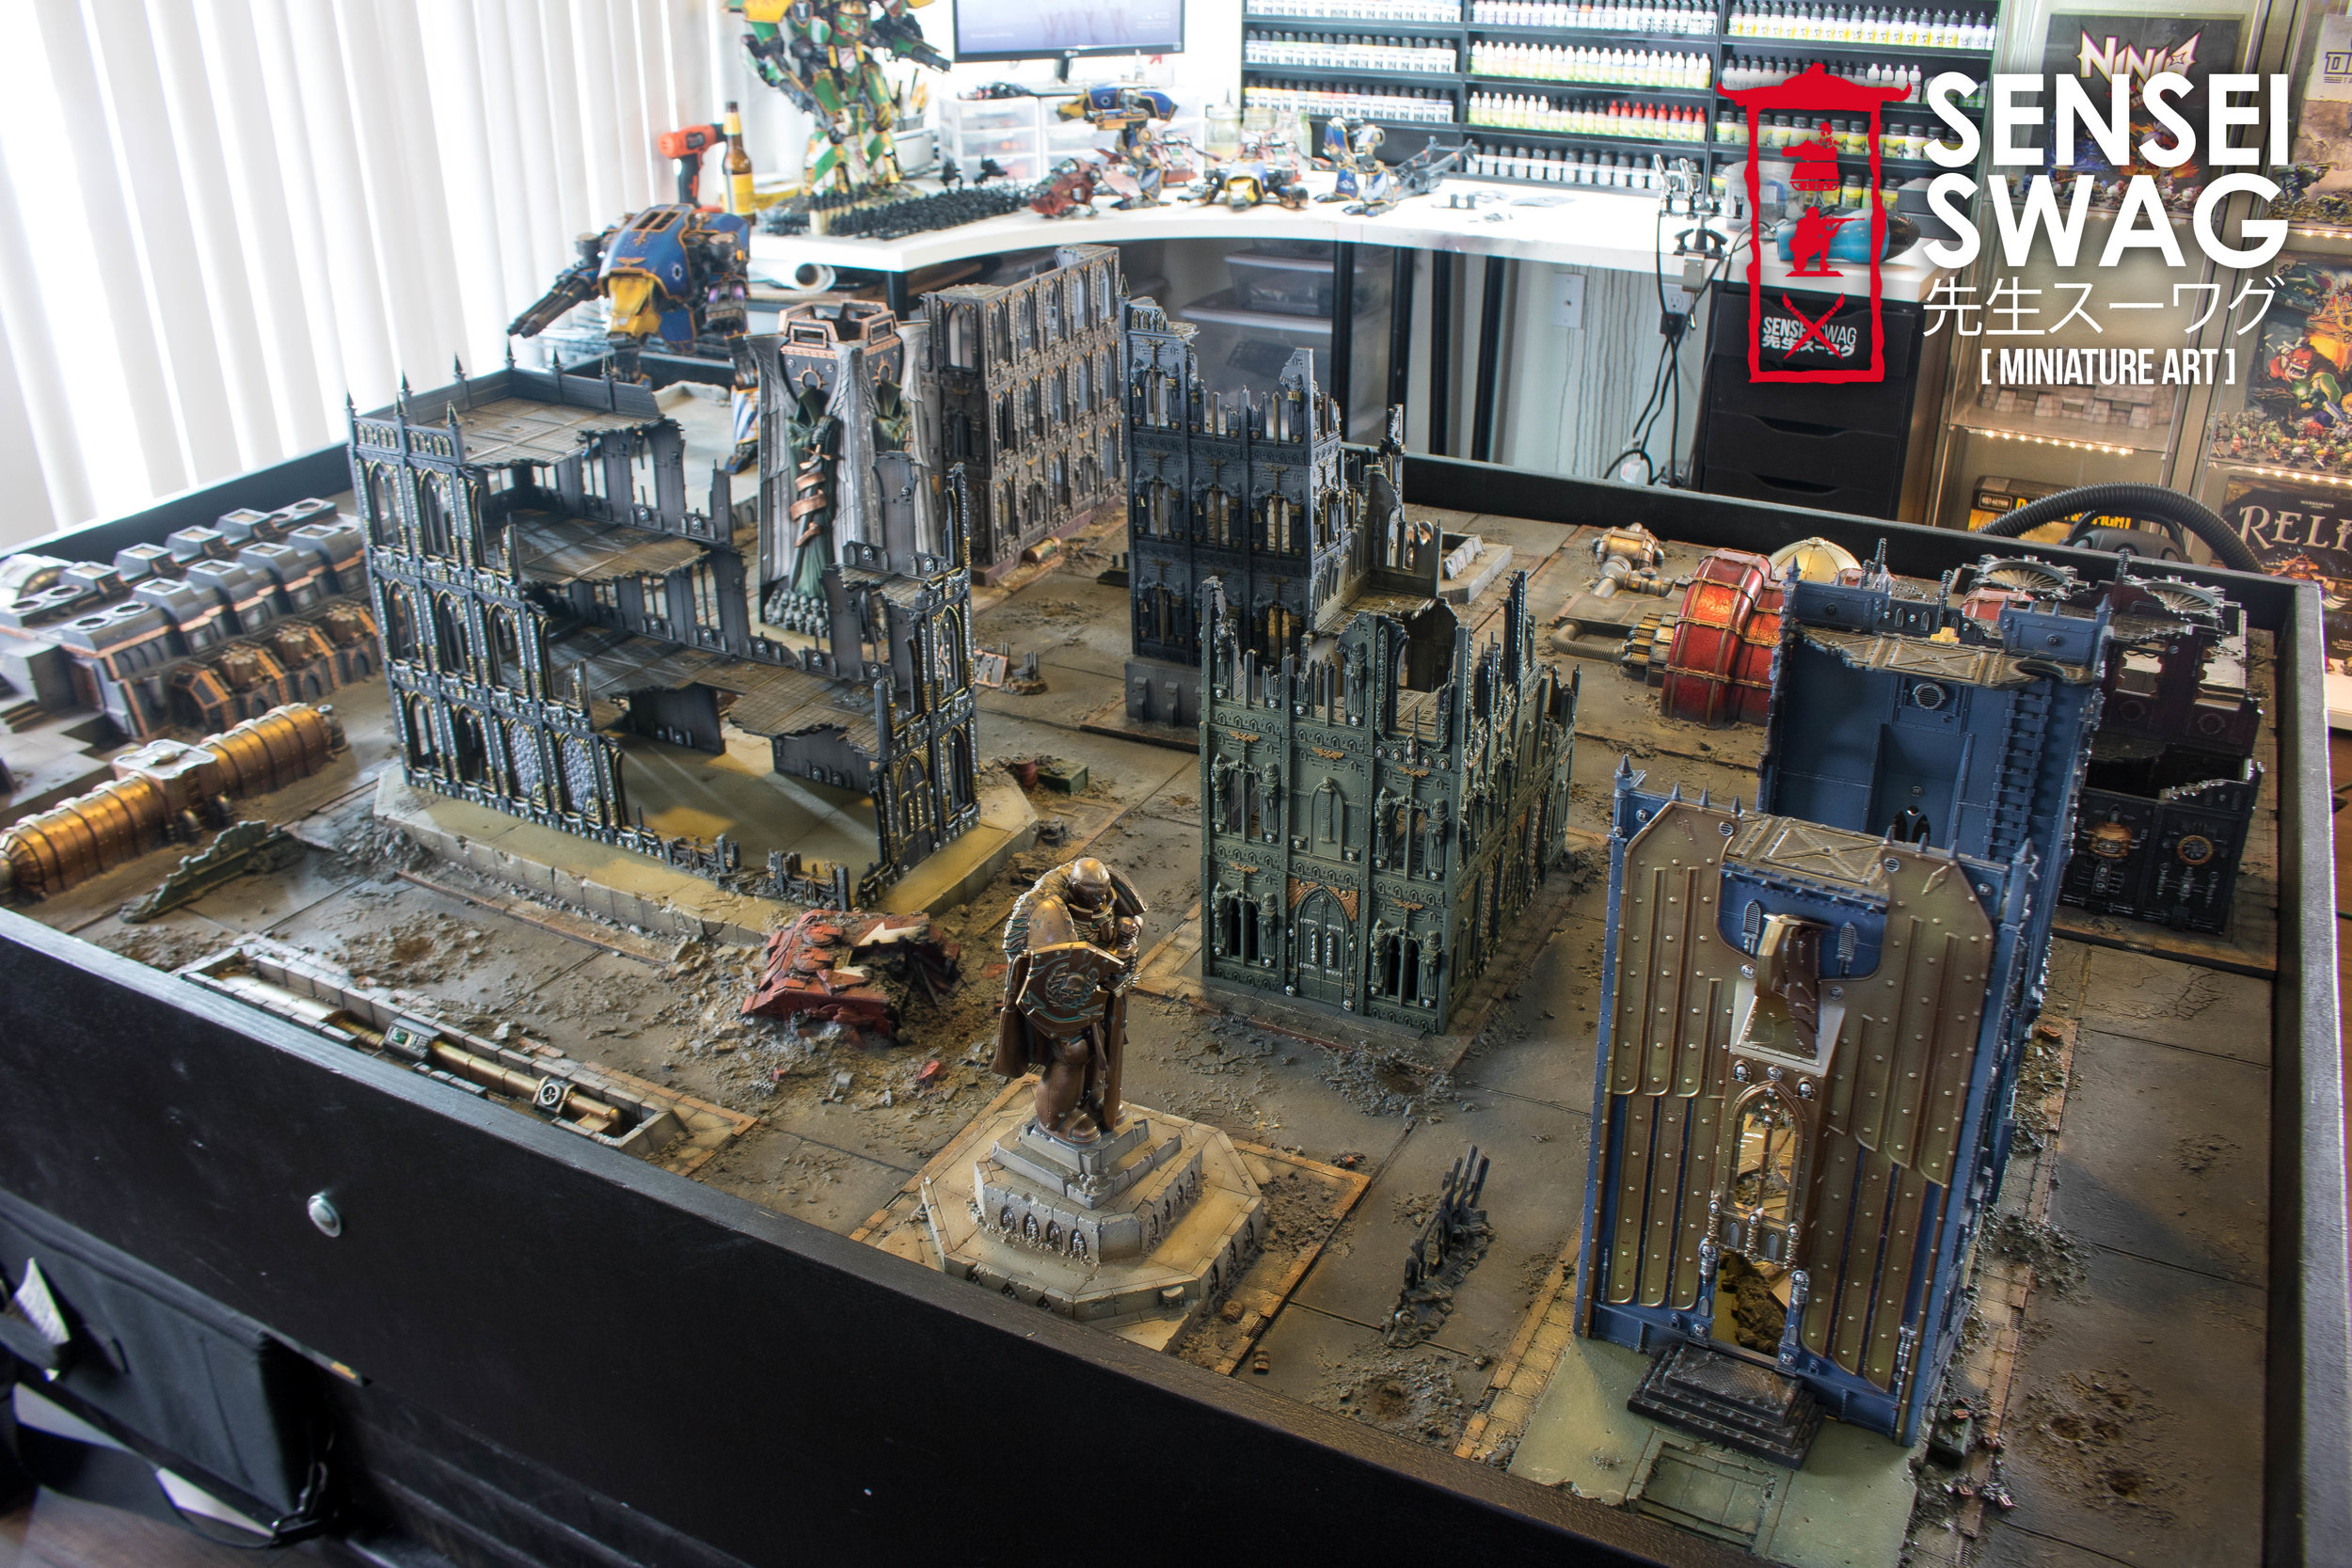 Warhammer 40k Cityfight Apocalypse Industrial Imperial Sector Forgeworld Gametable-1.jpg